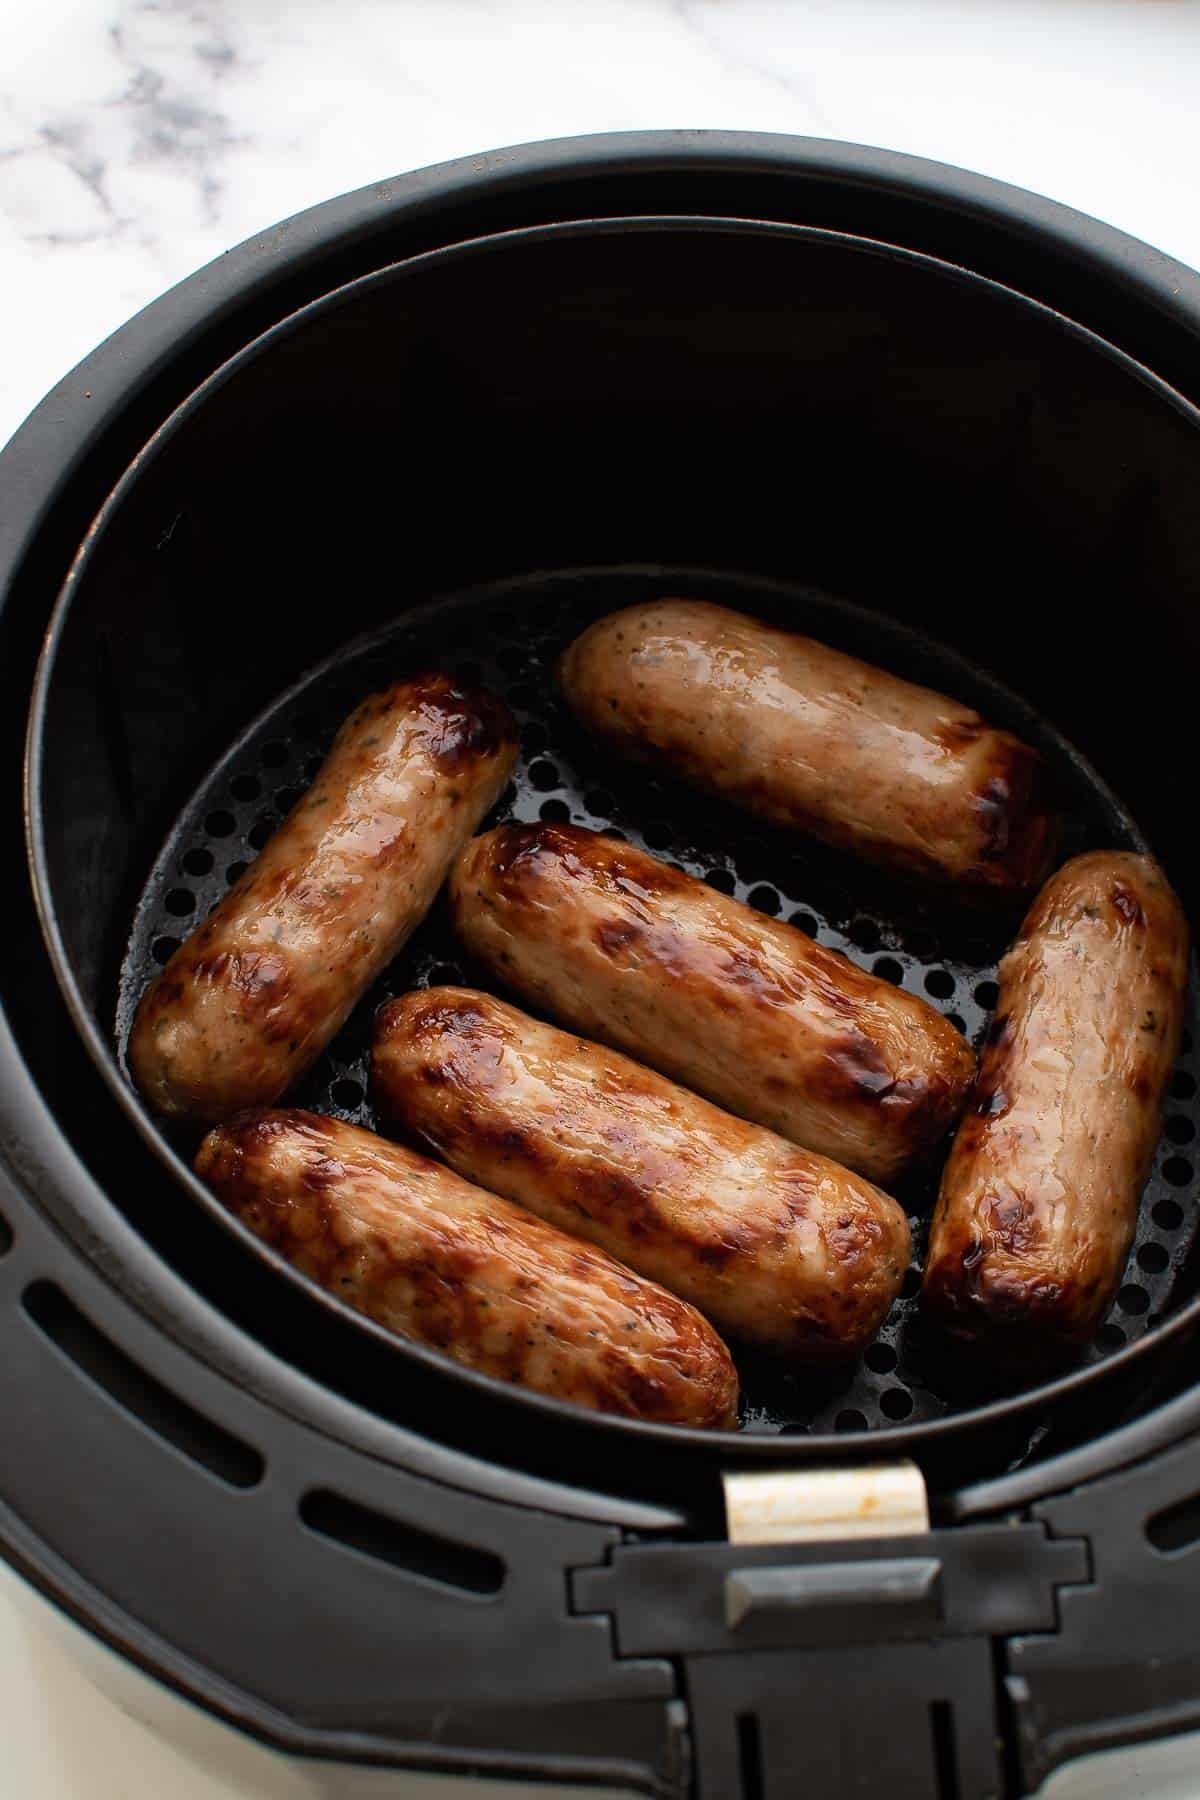 Cooked sausages in an air fryer basket.